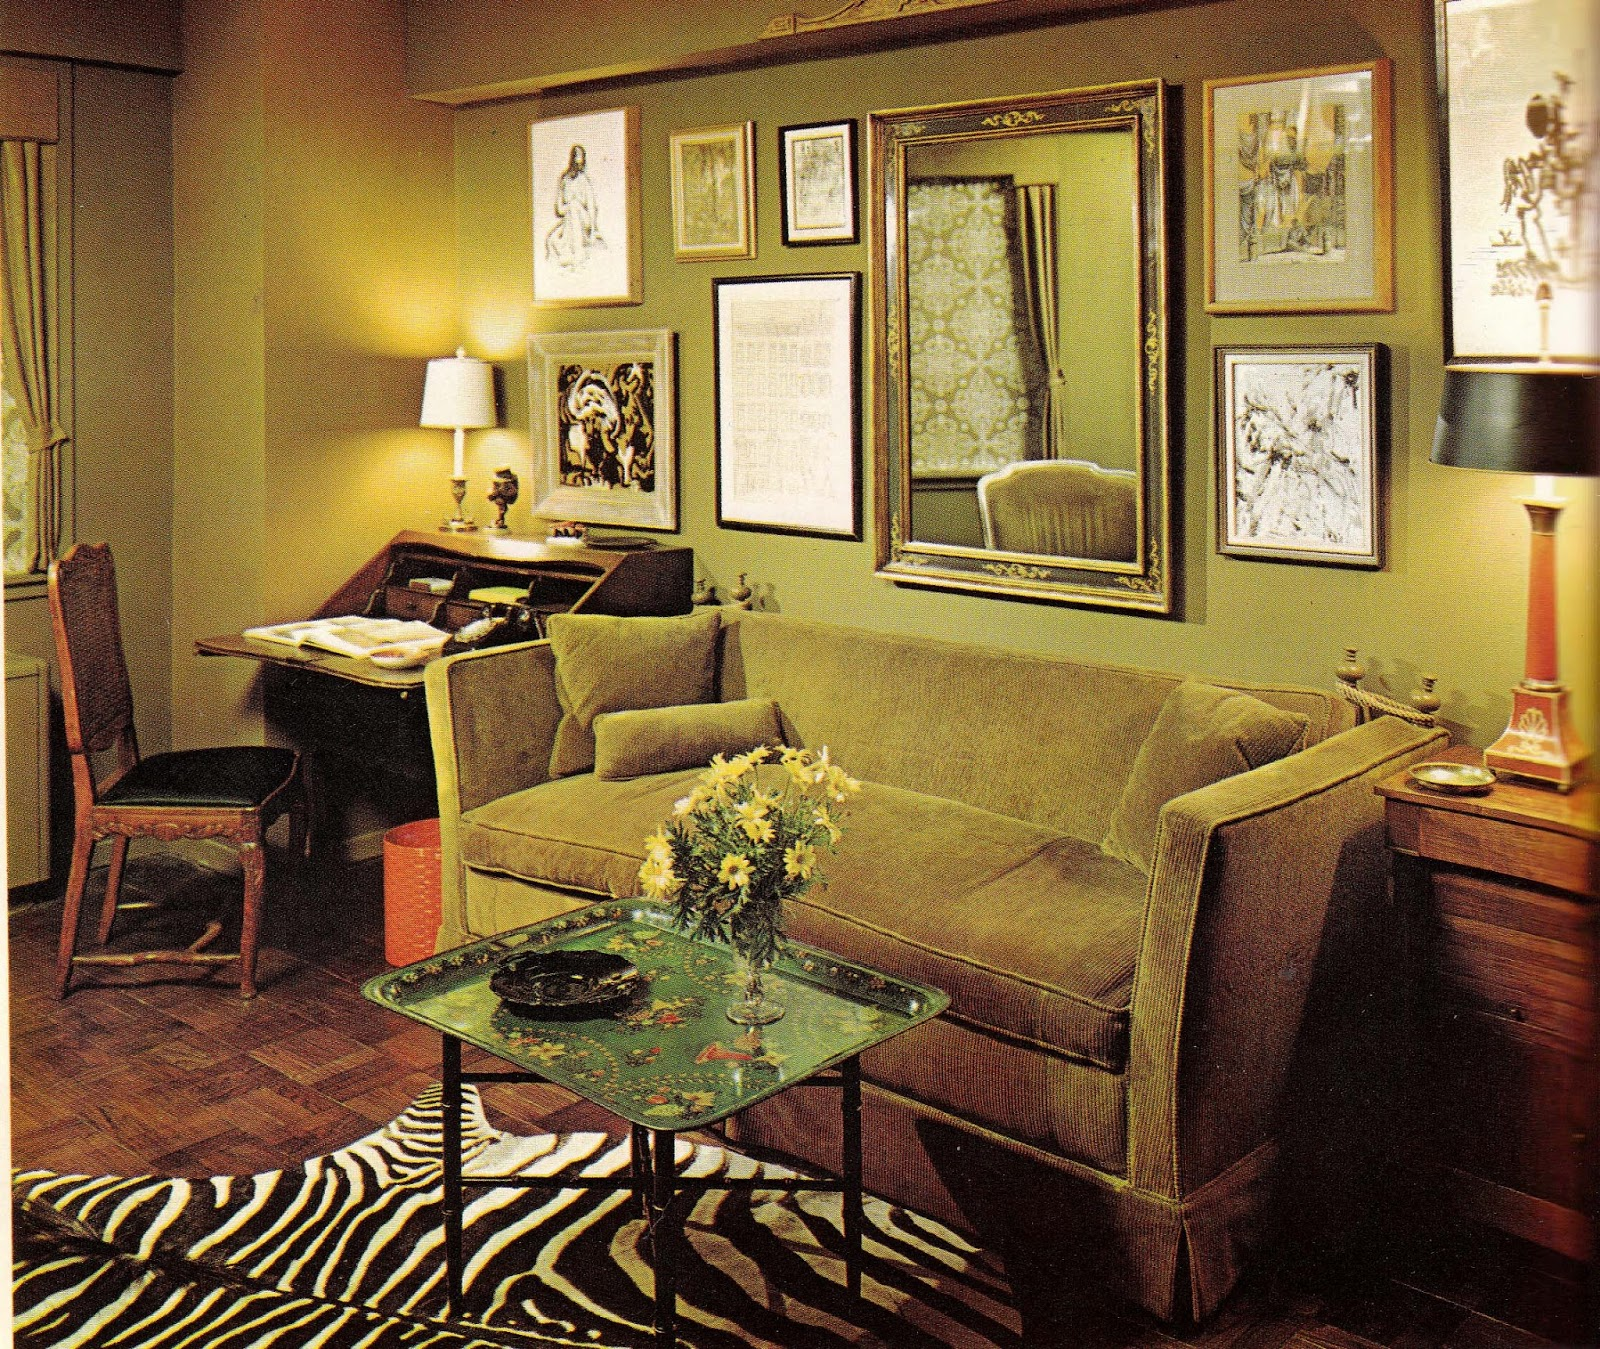 1960s interior d cor the decade of psychedelia gave rise Interior home decoration